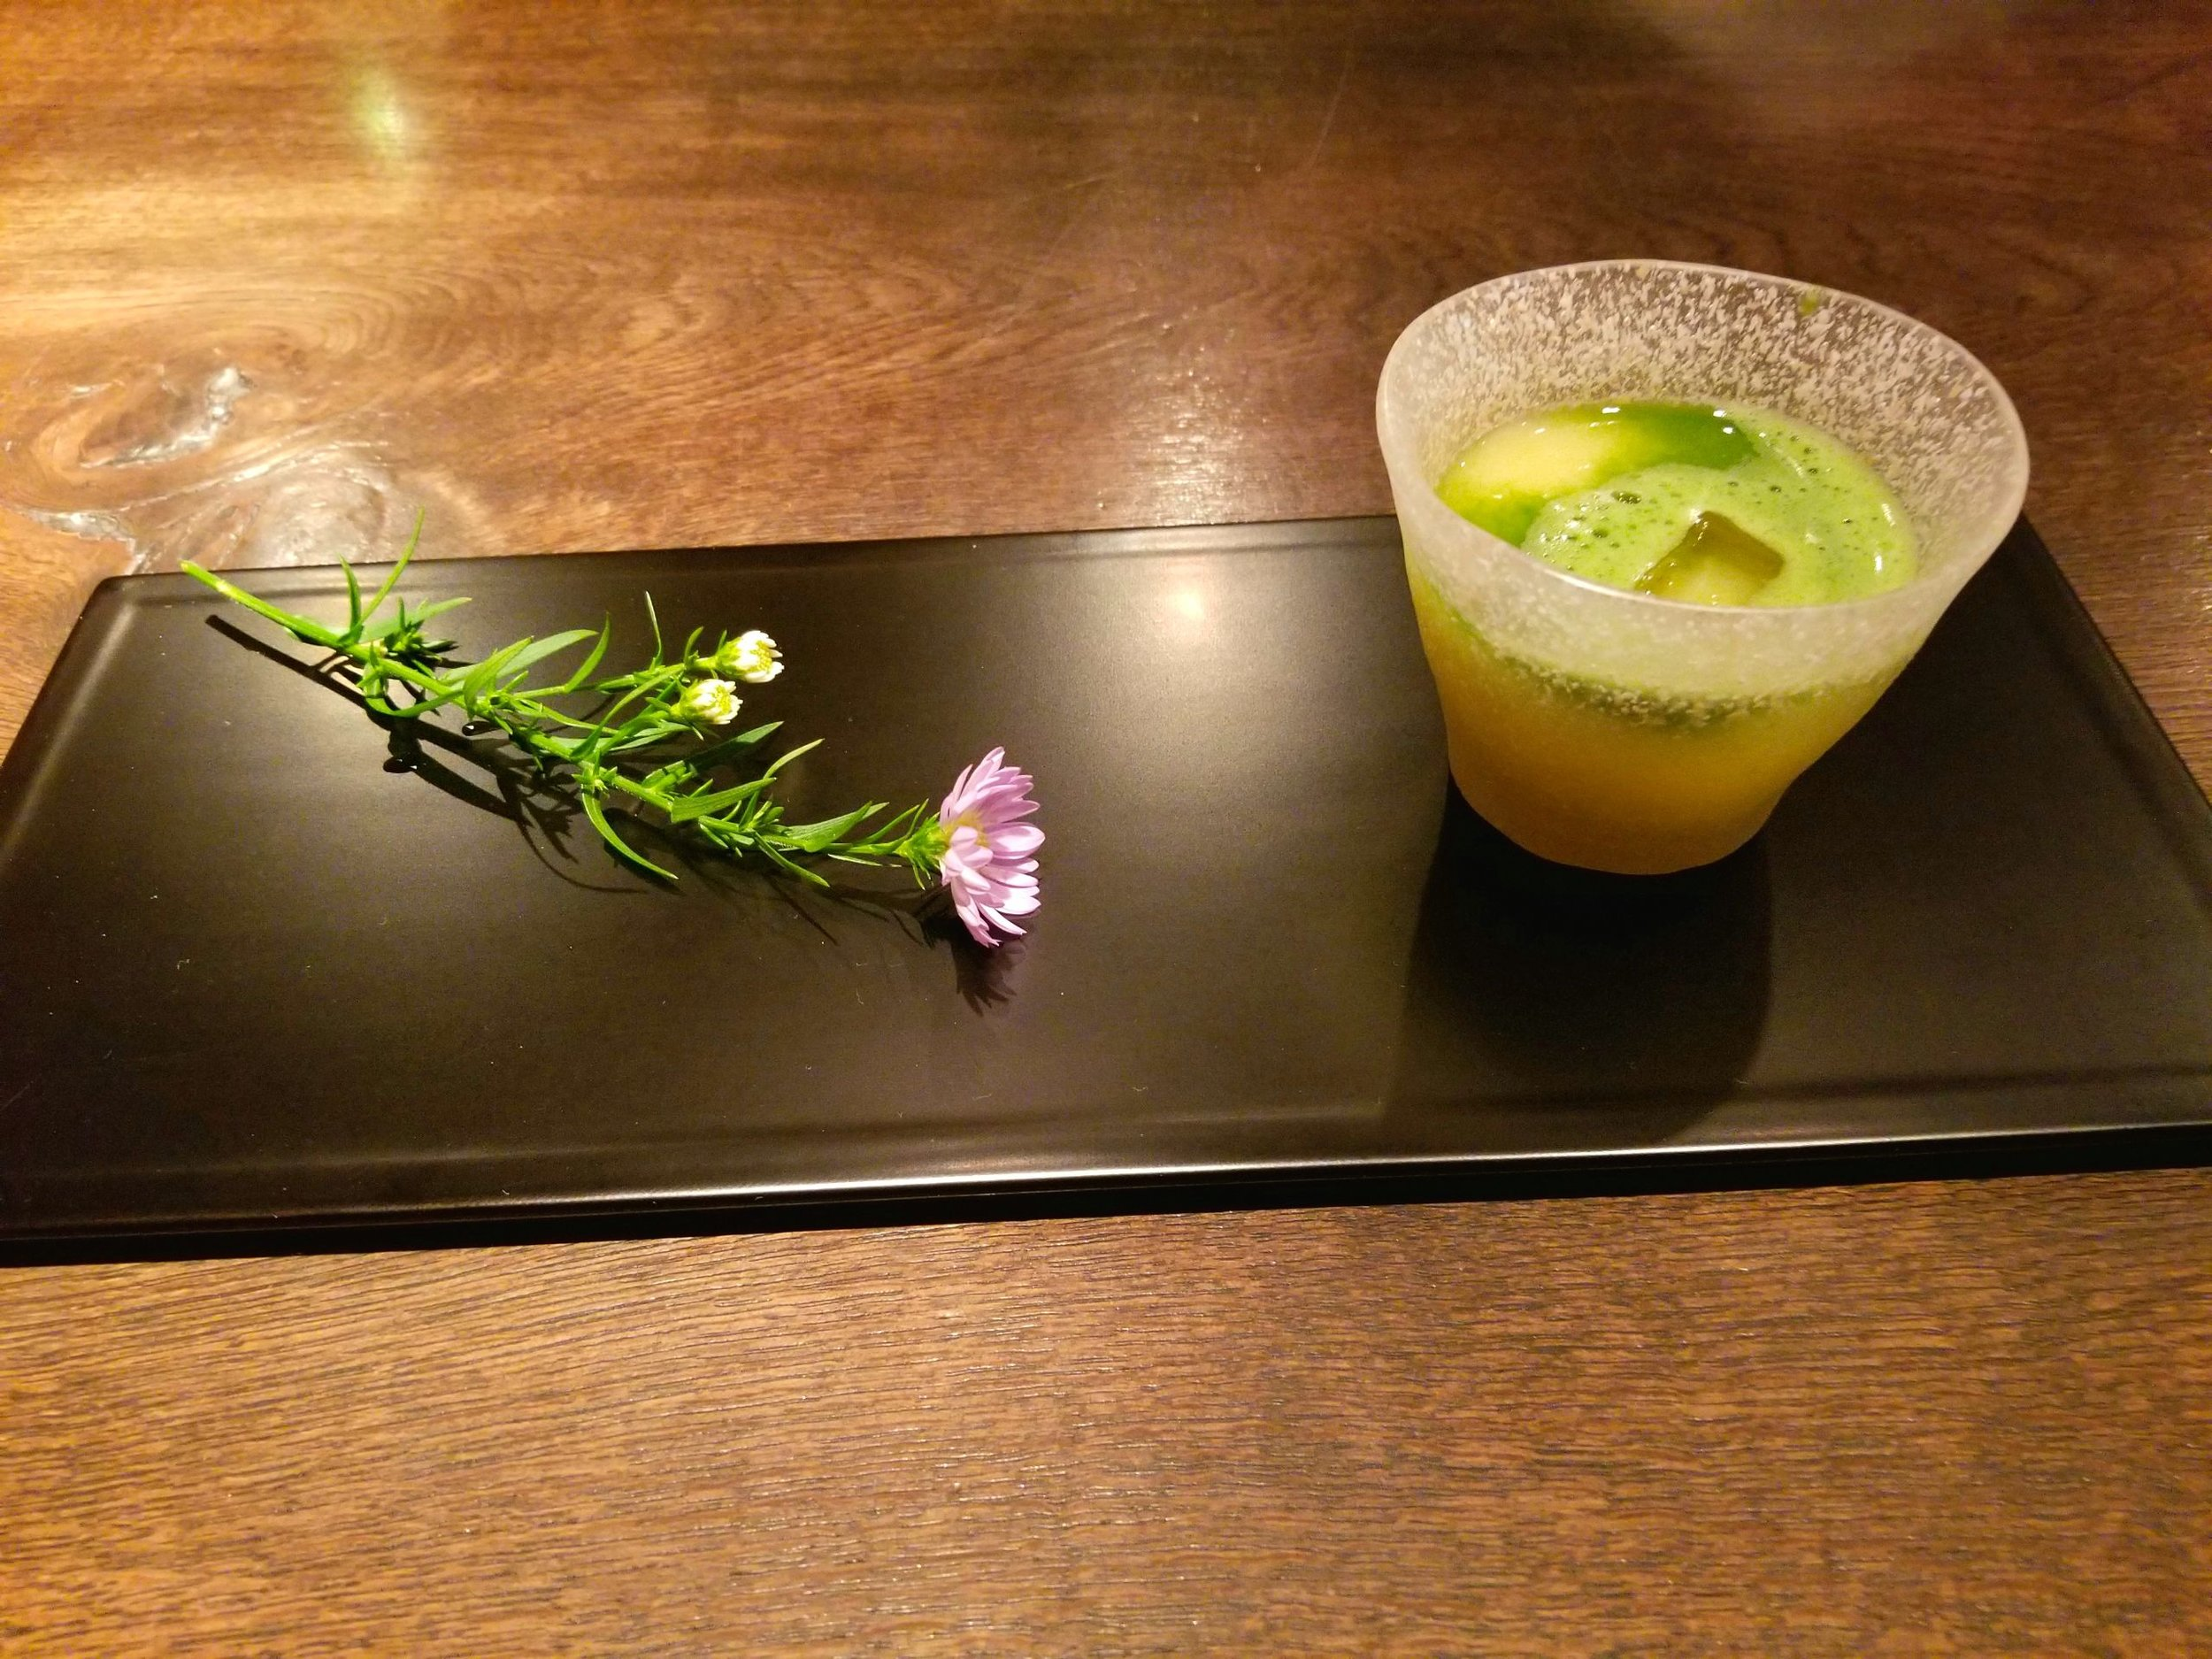 uprooted-traveler-gen-yamamoto-foolproof-guide-to-tokyo-cocktail